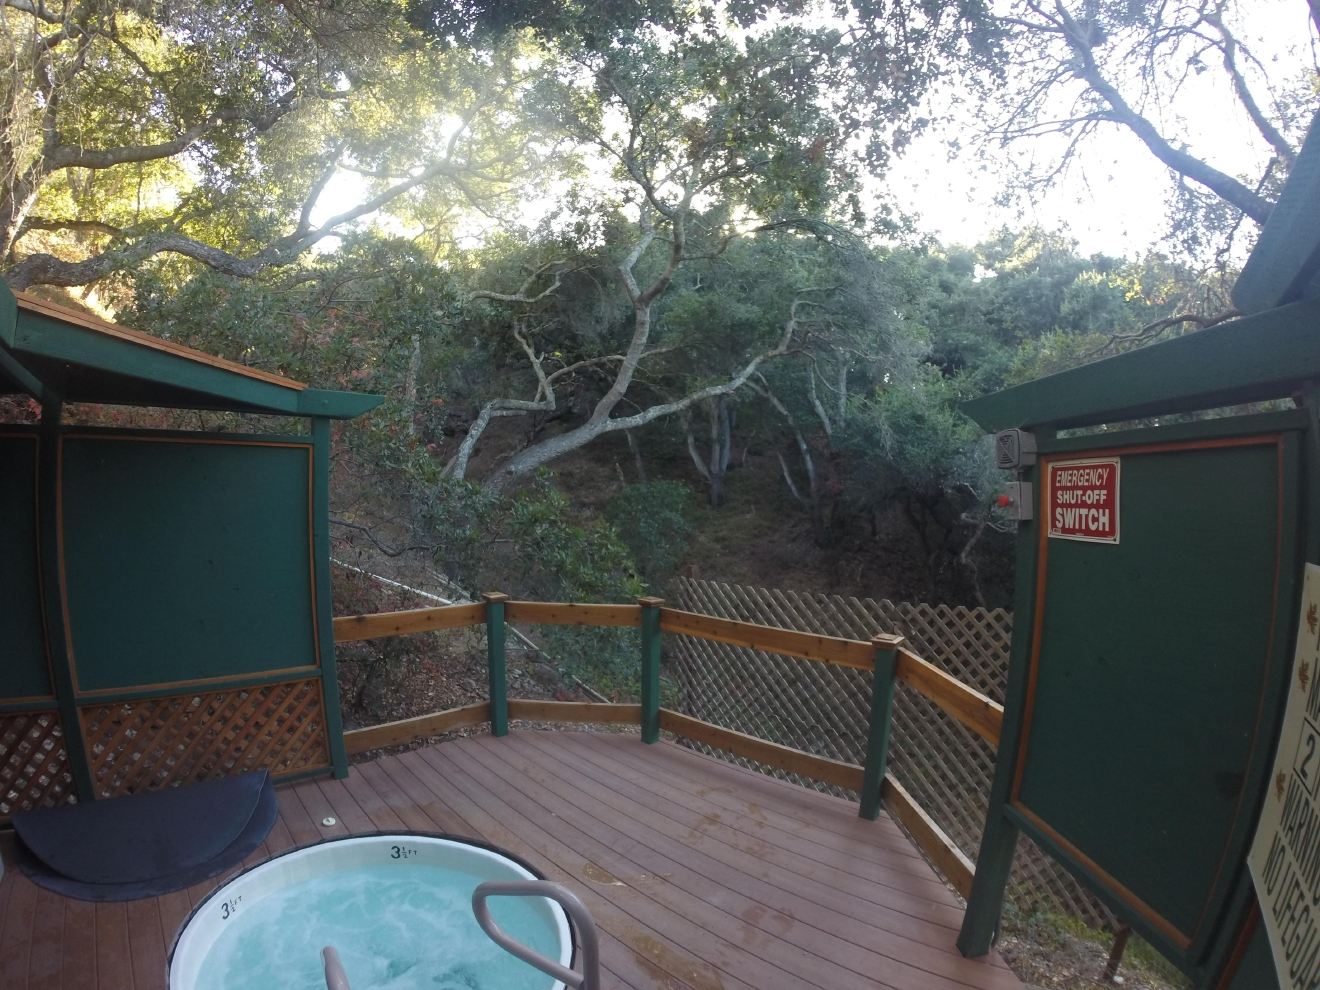 The hot tubs at Sycamore Mineral Springs are secluded, sitting on the hillside near Avila Beach.